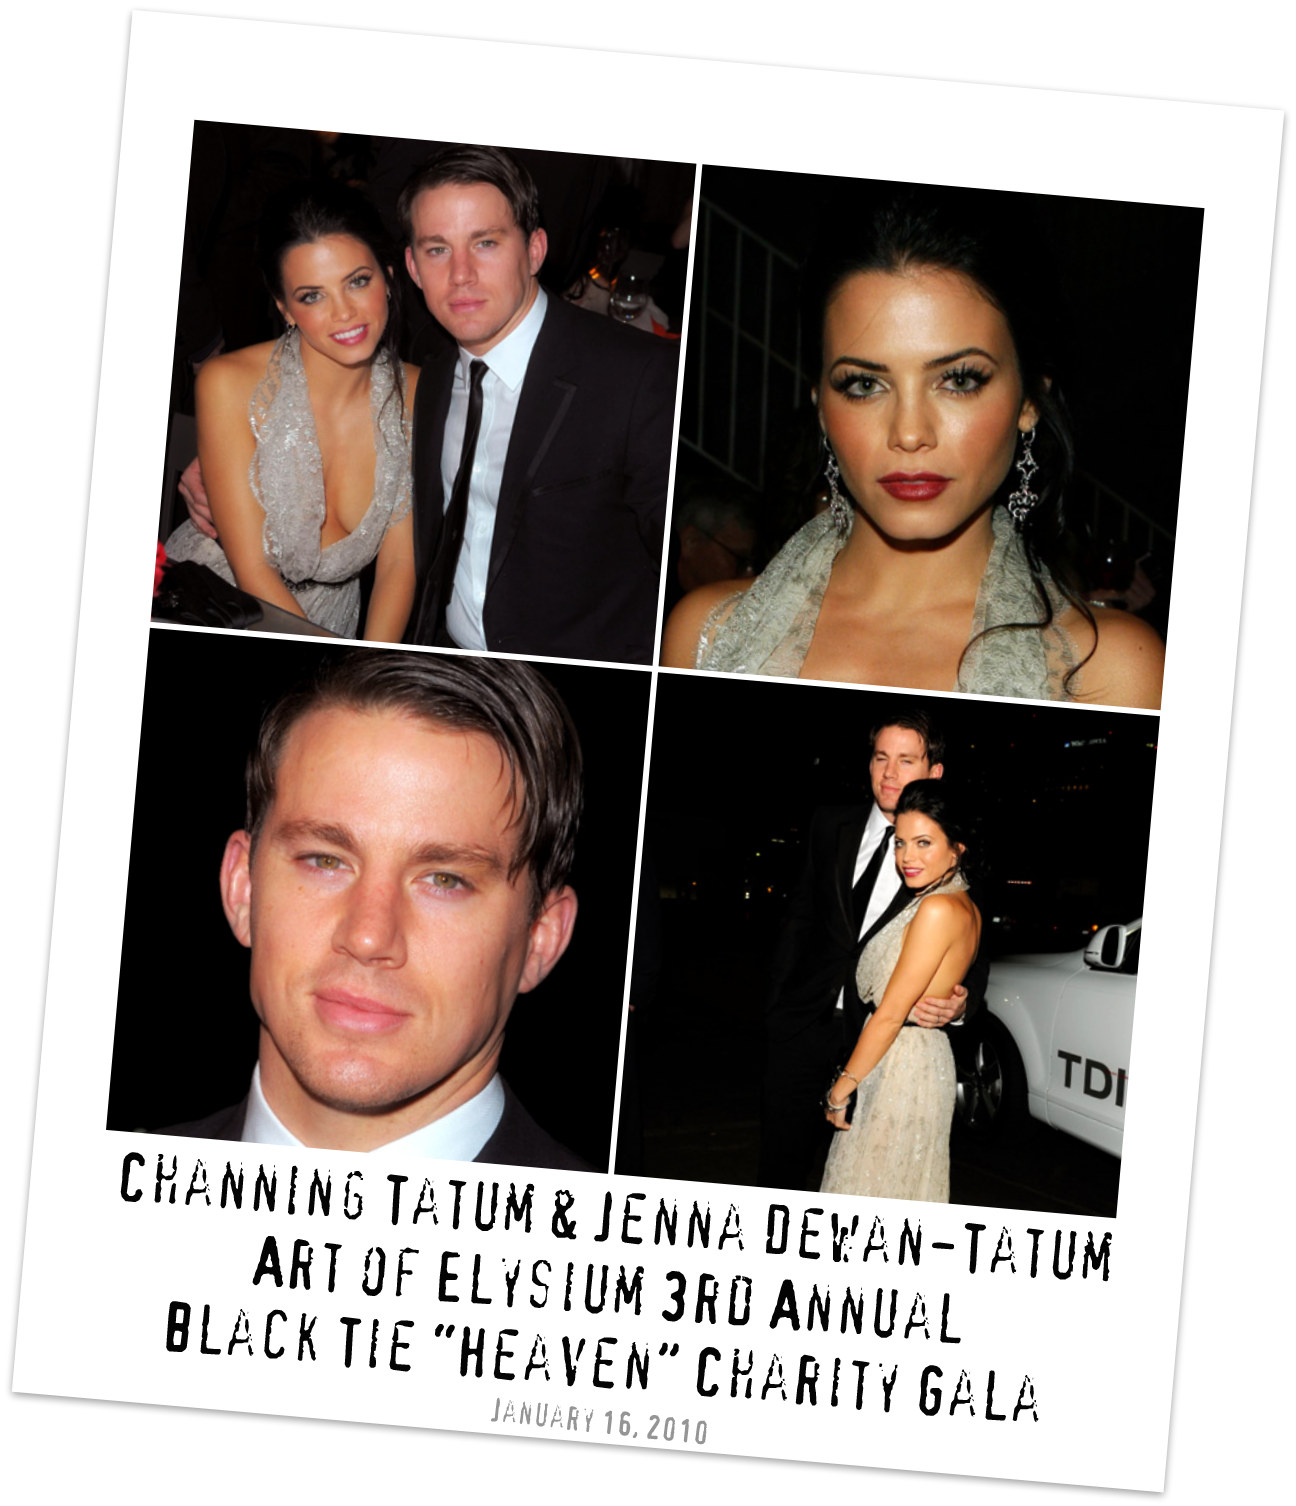 Channing Tatum and Jenna Dewan-Tatum at Art of Elysium Charity Gala